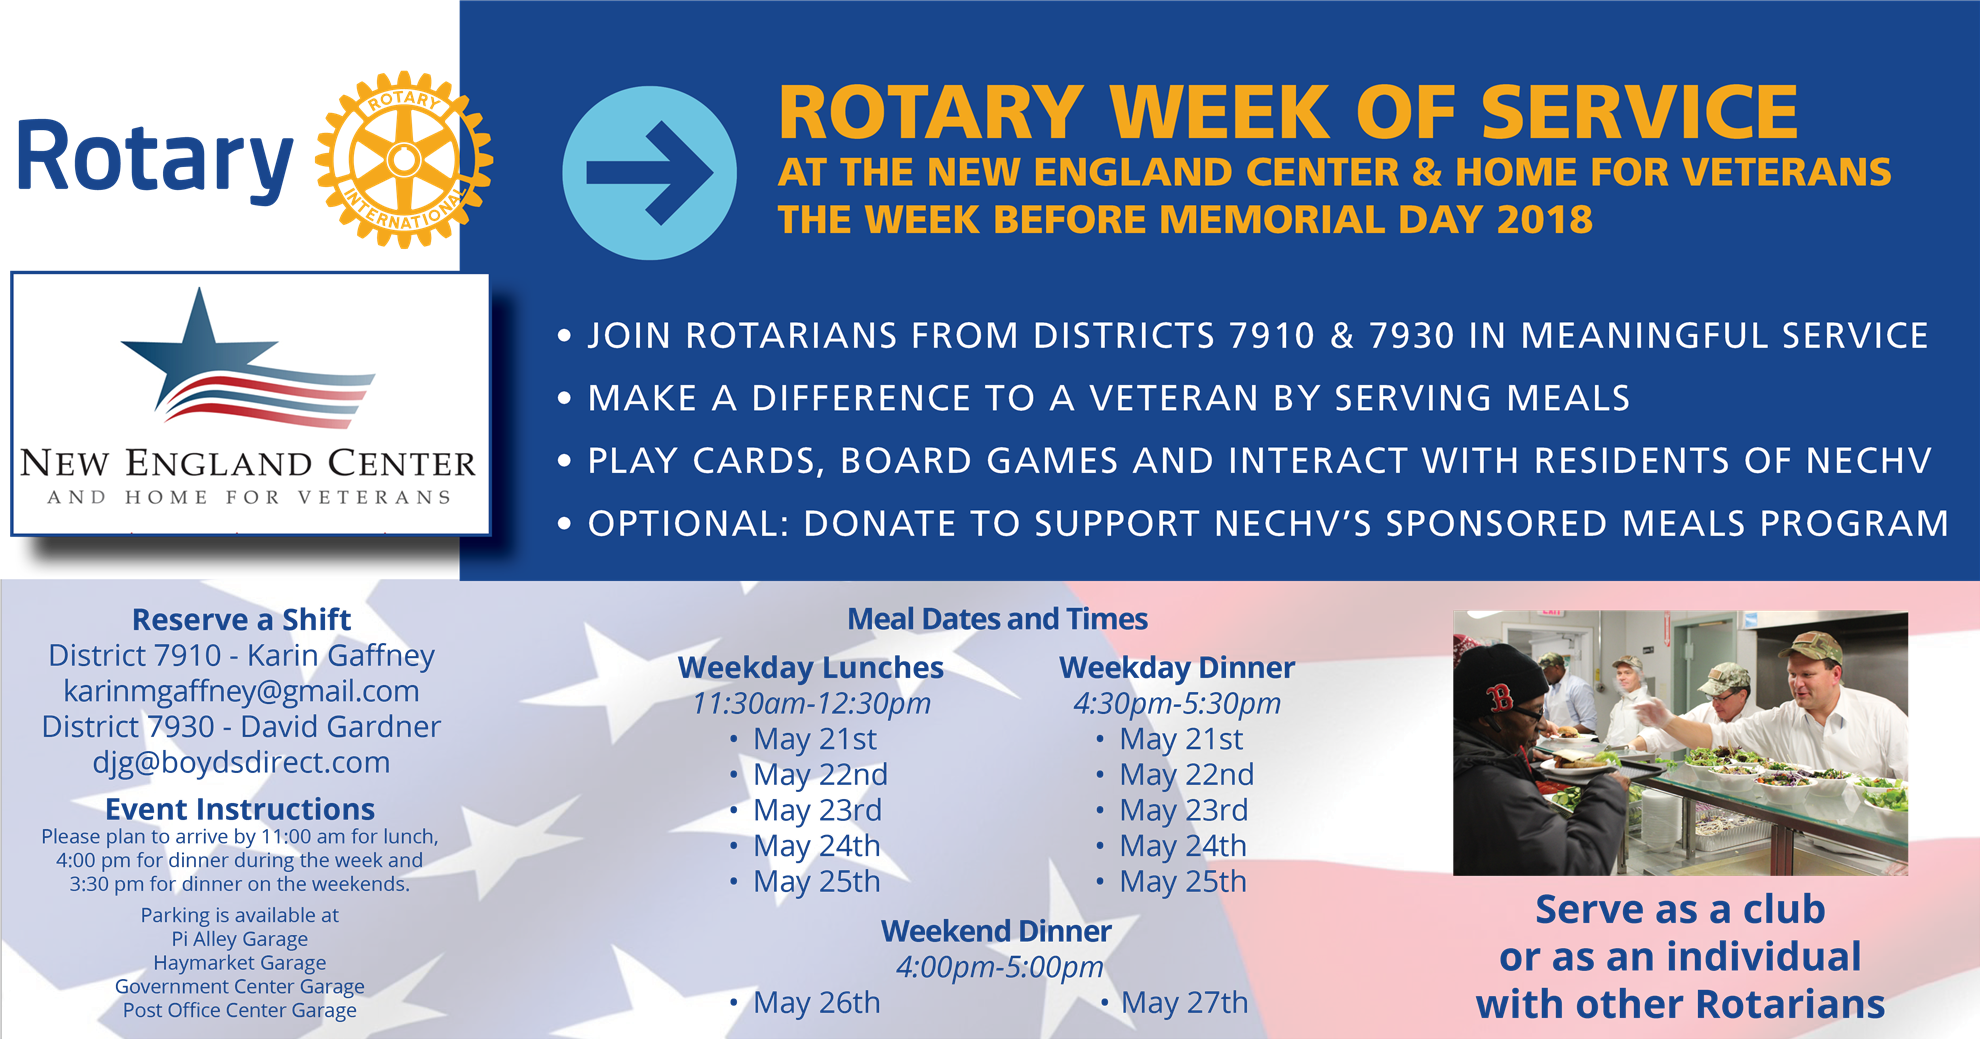 Week of Rotary - Make a Difference to Veterans | Rotary